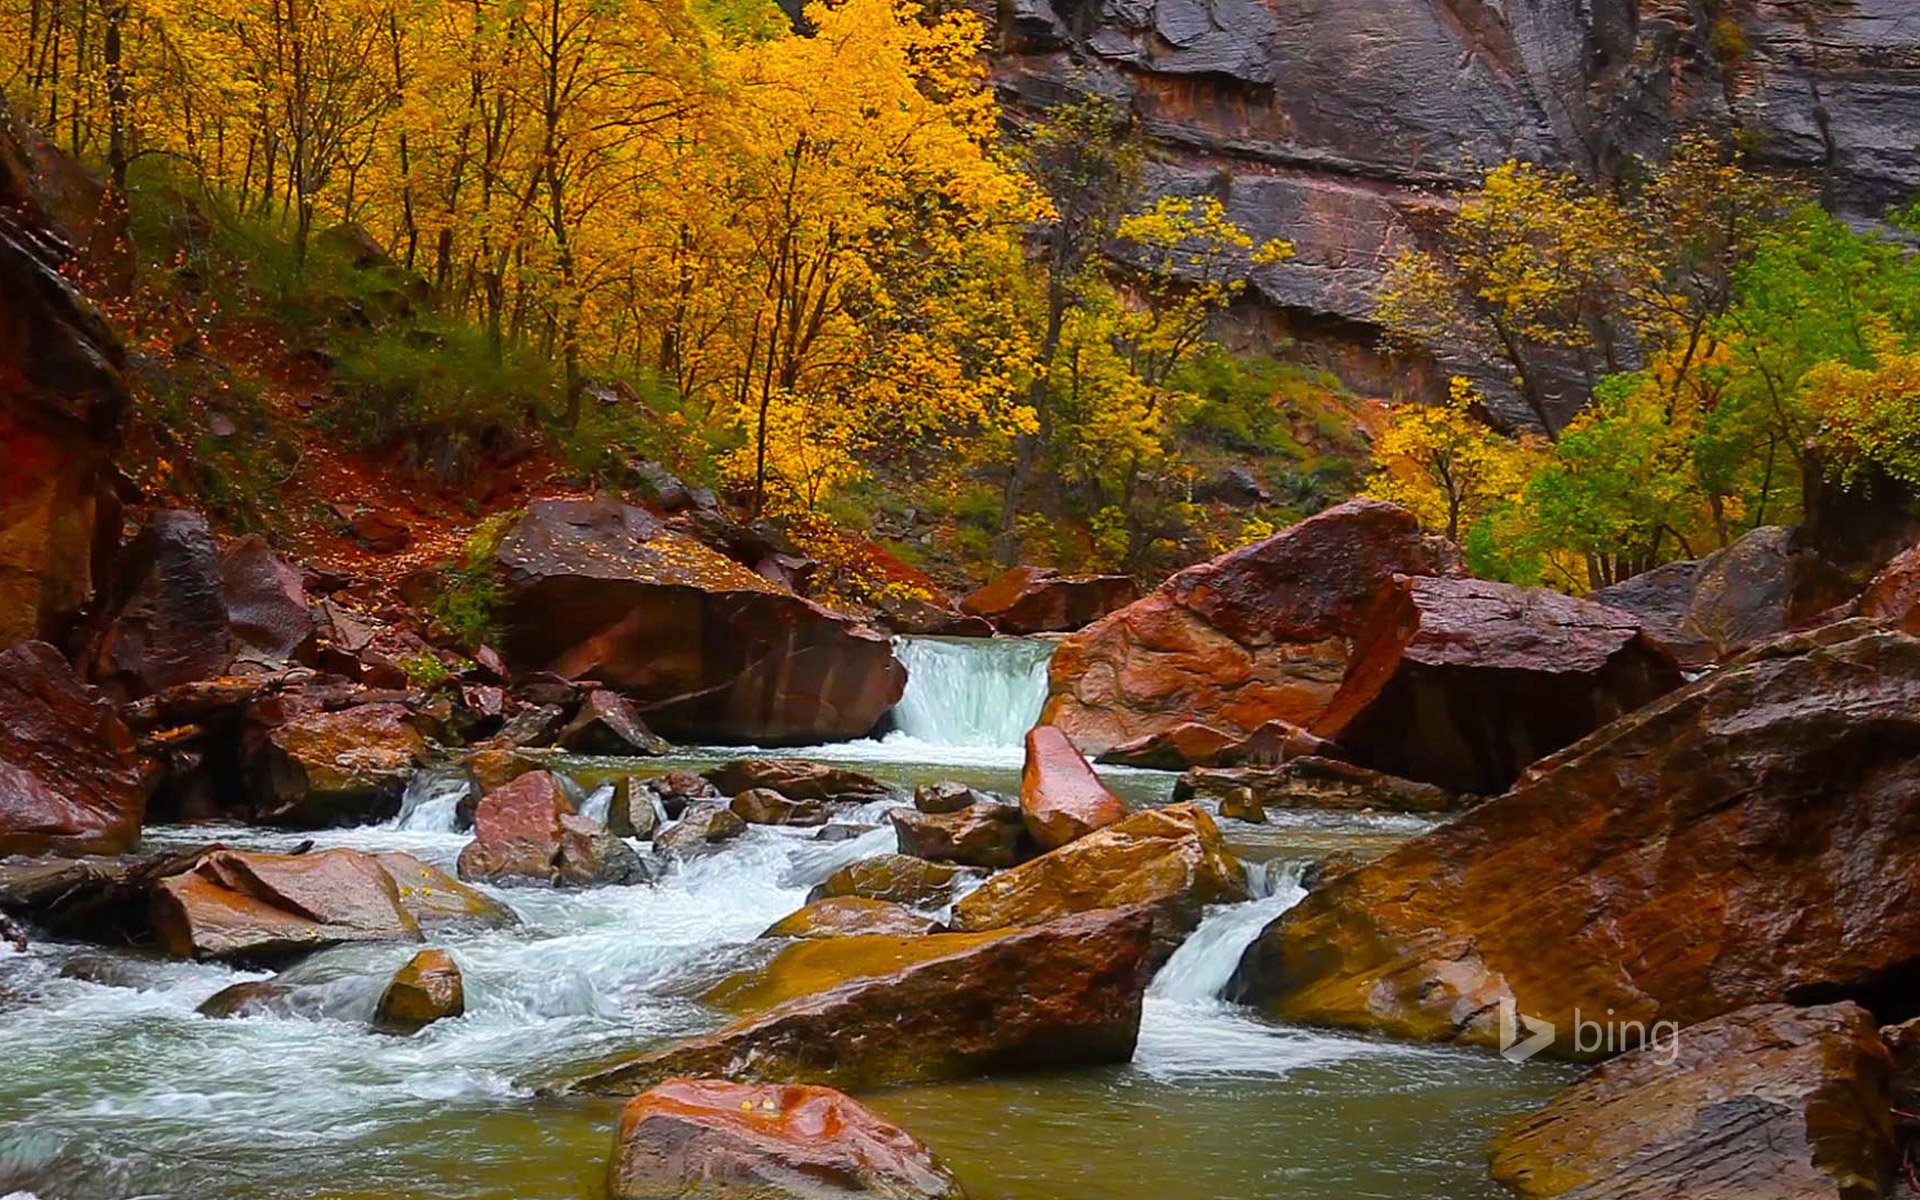 North Fork of the Virgin River, Zion Canyon, Utah